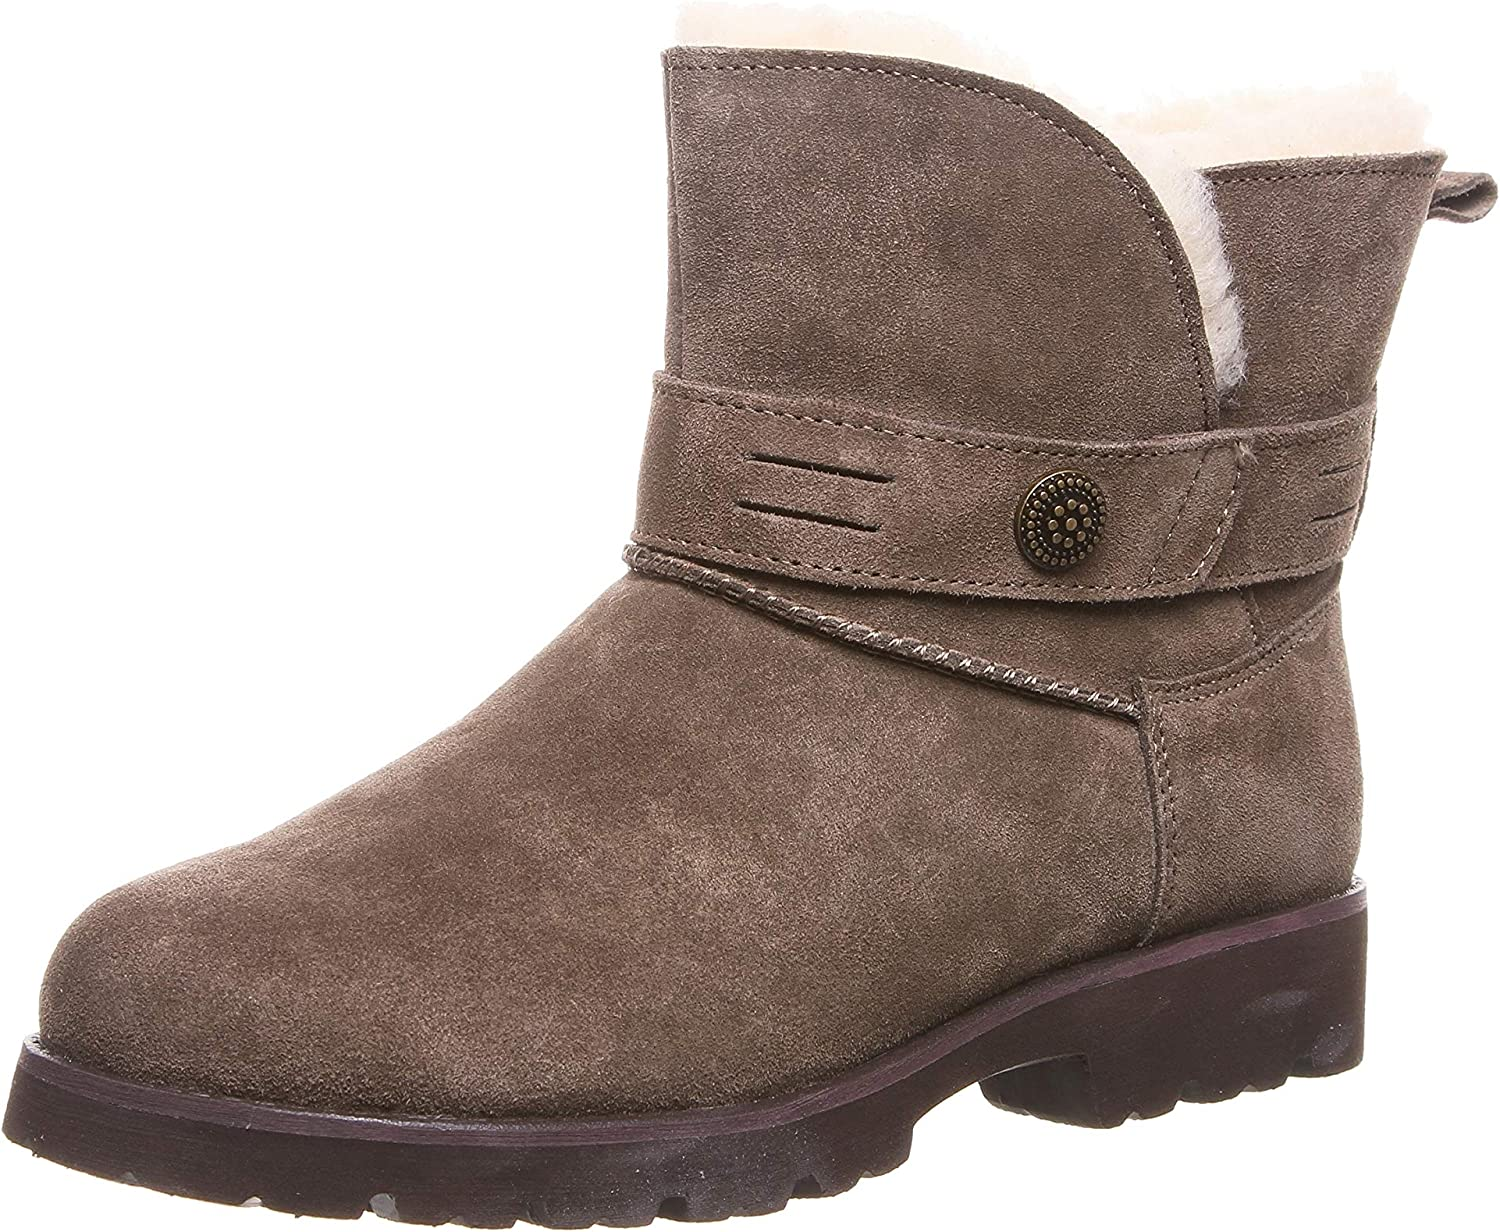 BEARPAW Women's Wellston Boot